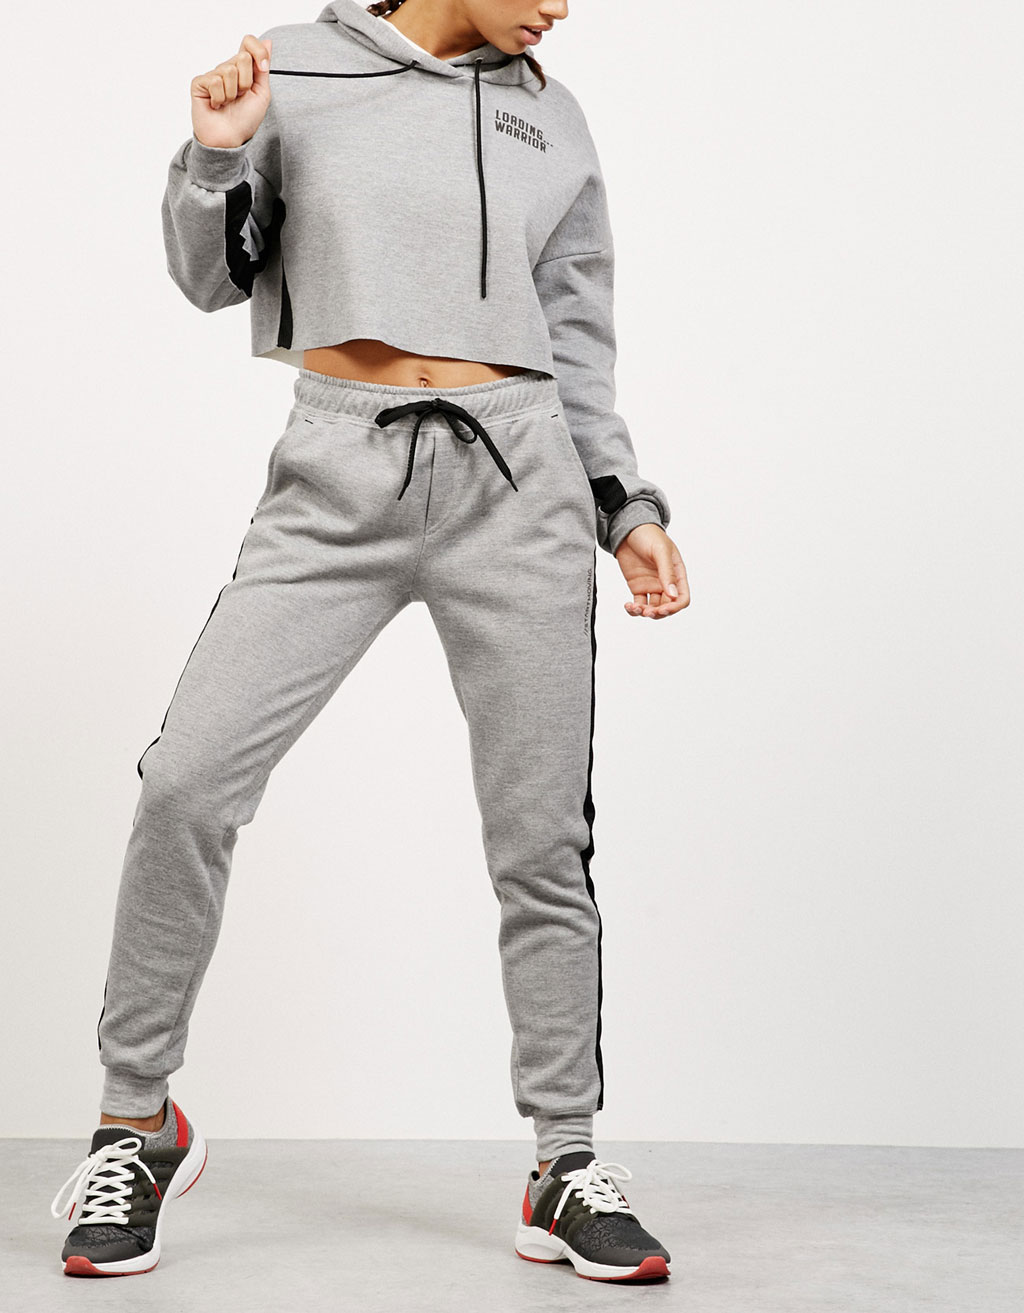 Plush sports trousers with mesh detail